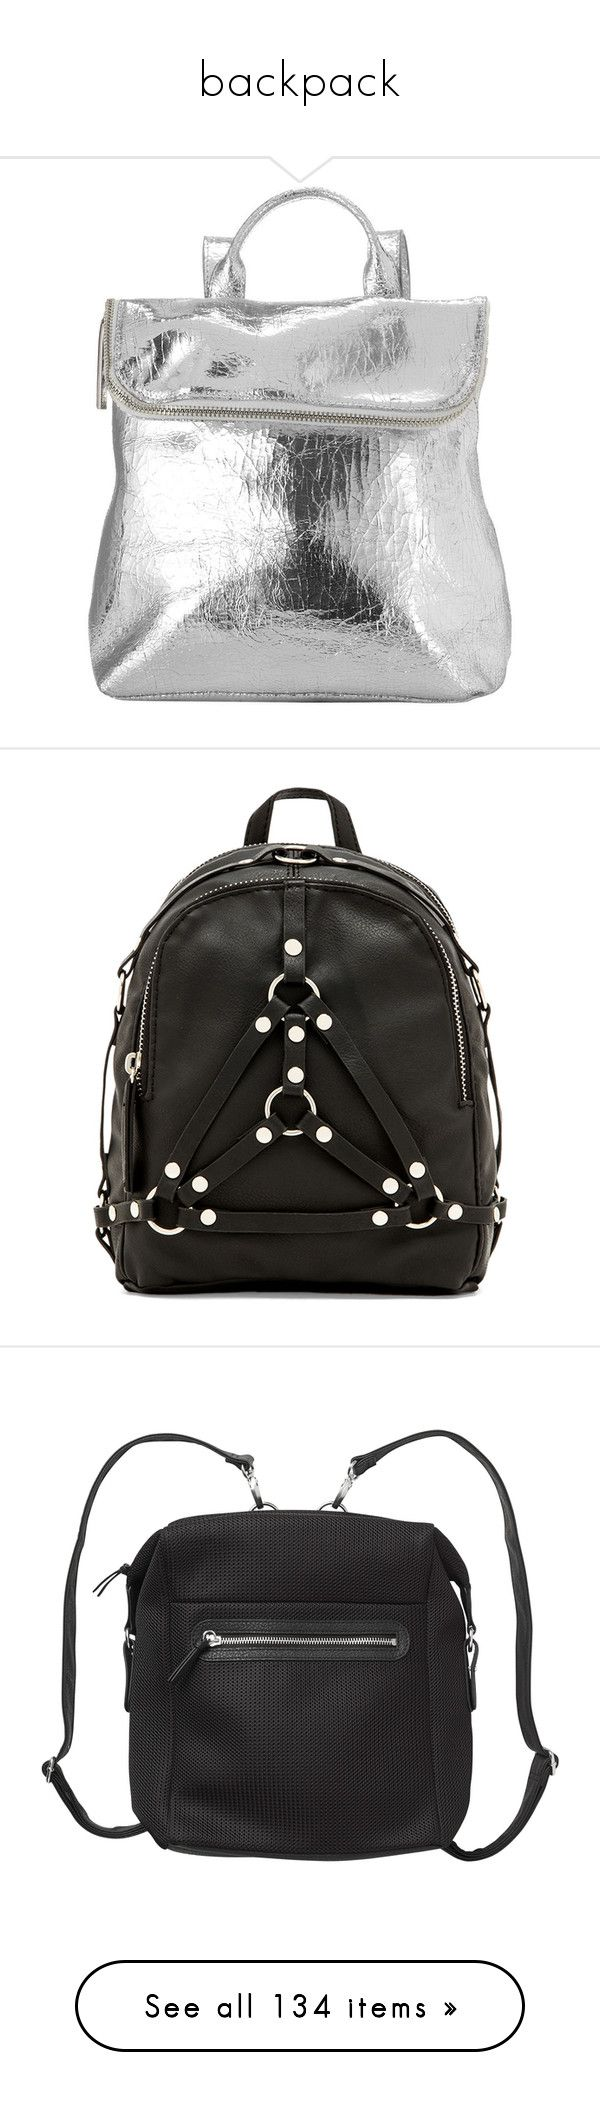 """backpack"" by brigi-bodoki ❤ liked on Polyvore featuring bags, backpacks, purses, silver, mini bag, leather daypack, whistles backpack, mini rucksack, backpack bags and accessories"